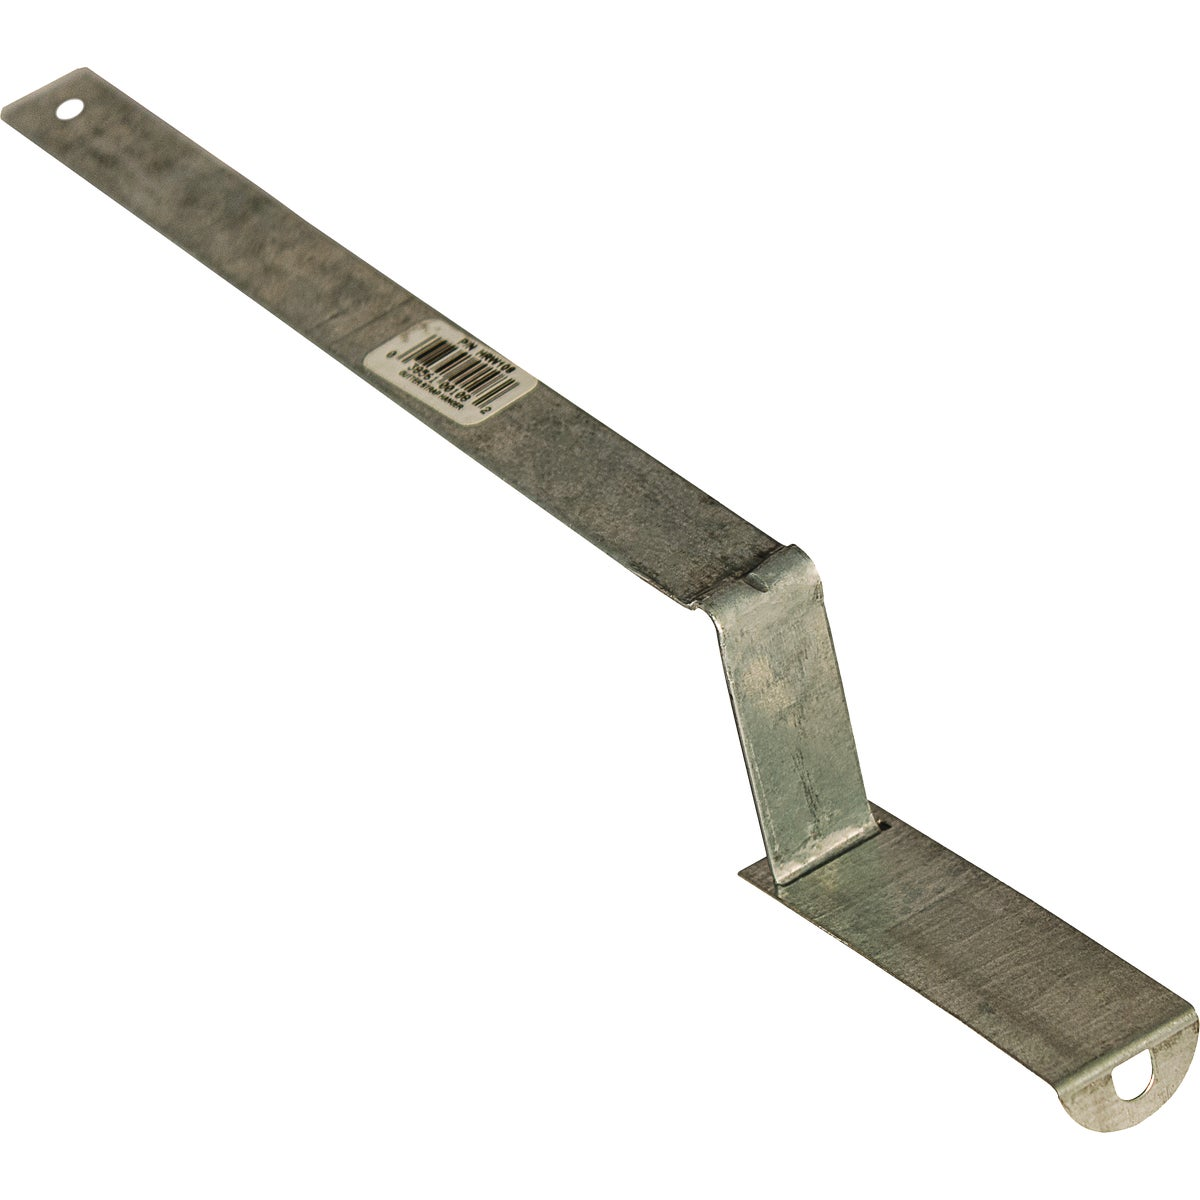 GUTTER STRAP HANGER - HRW108 by Genova Products